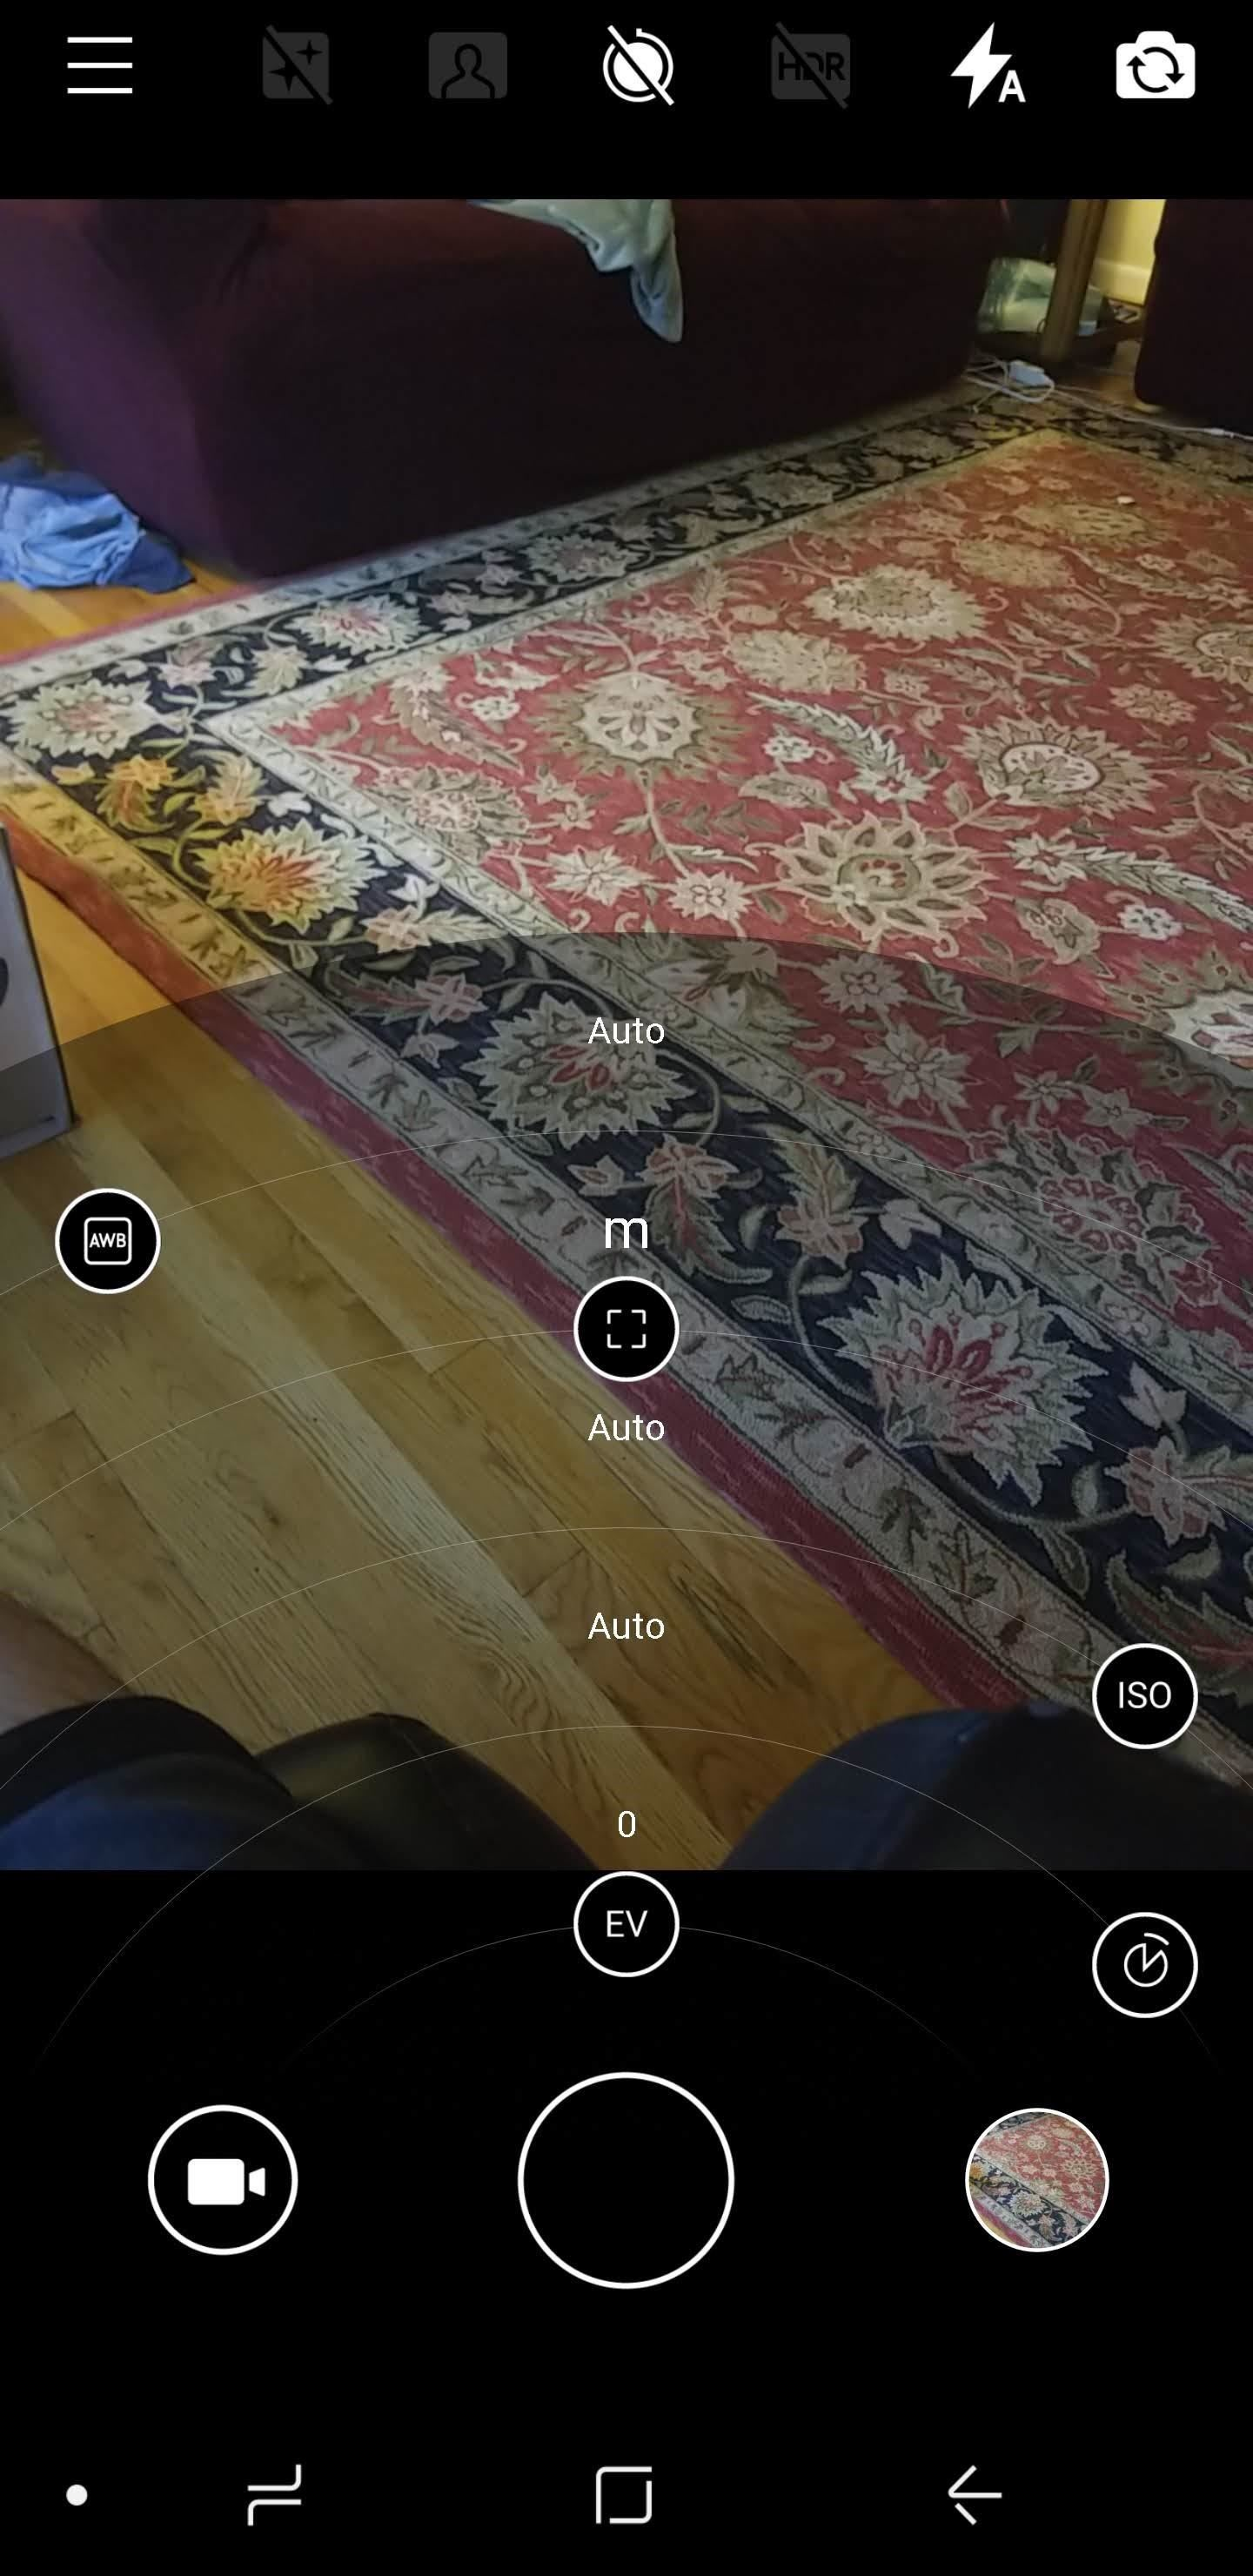 Get Nokia's Exclusive Camera App with Pro Mode on Any Android